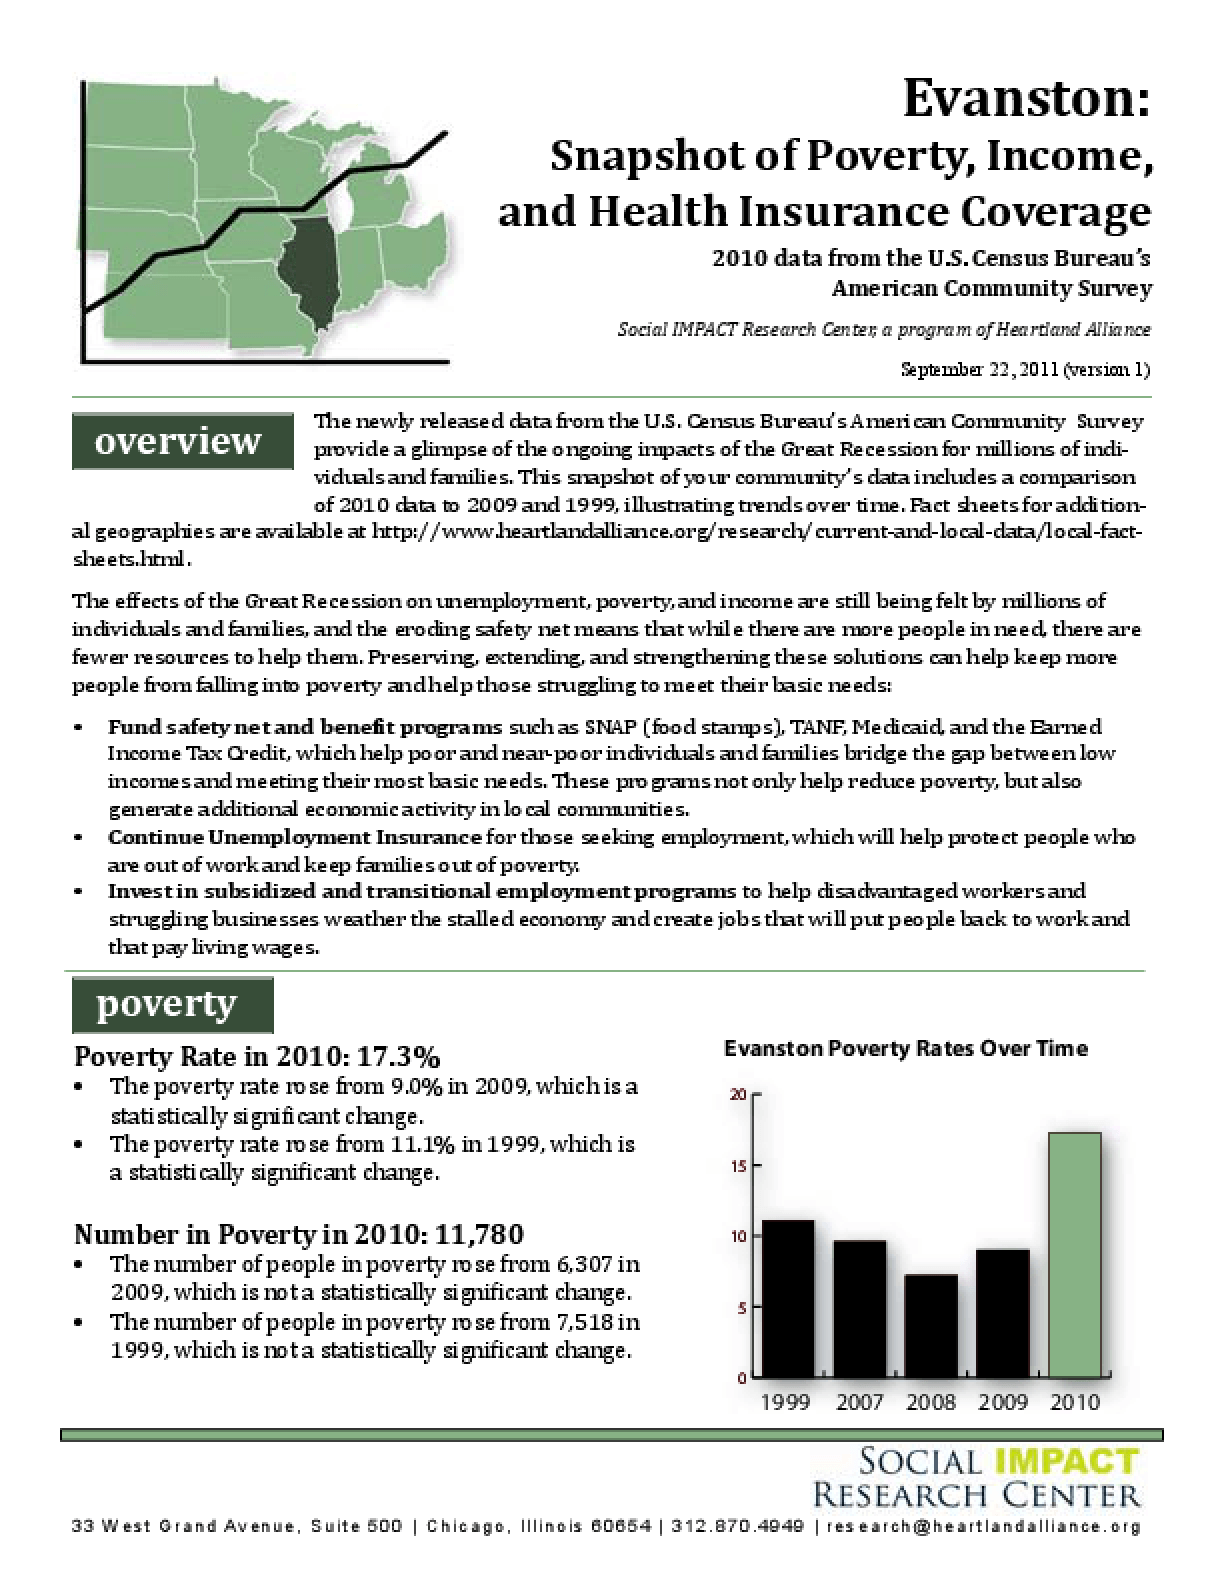 Evanston: Snapshot of Poverty, Income, and Health Insurance Coverage